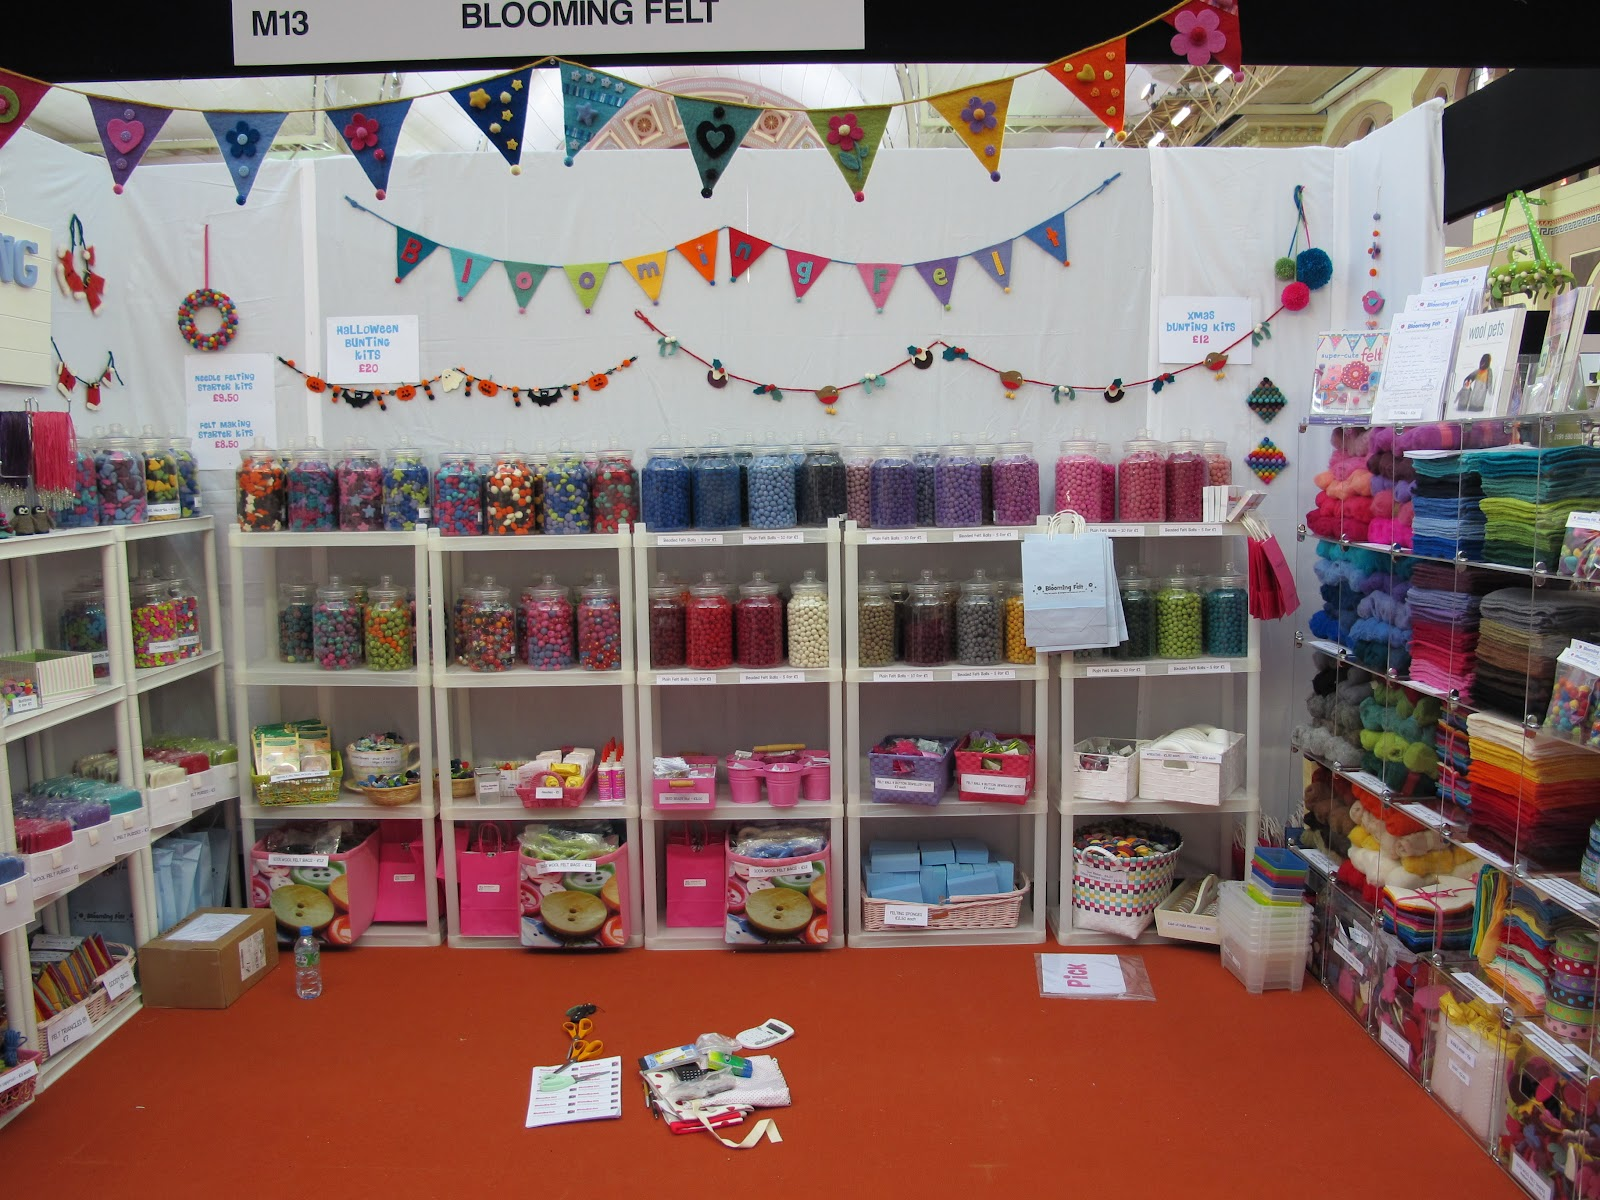 Knit And Stitch Show : Blooming Felt - News from Shedquarters: Knitting & Stitching Show